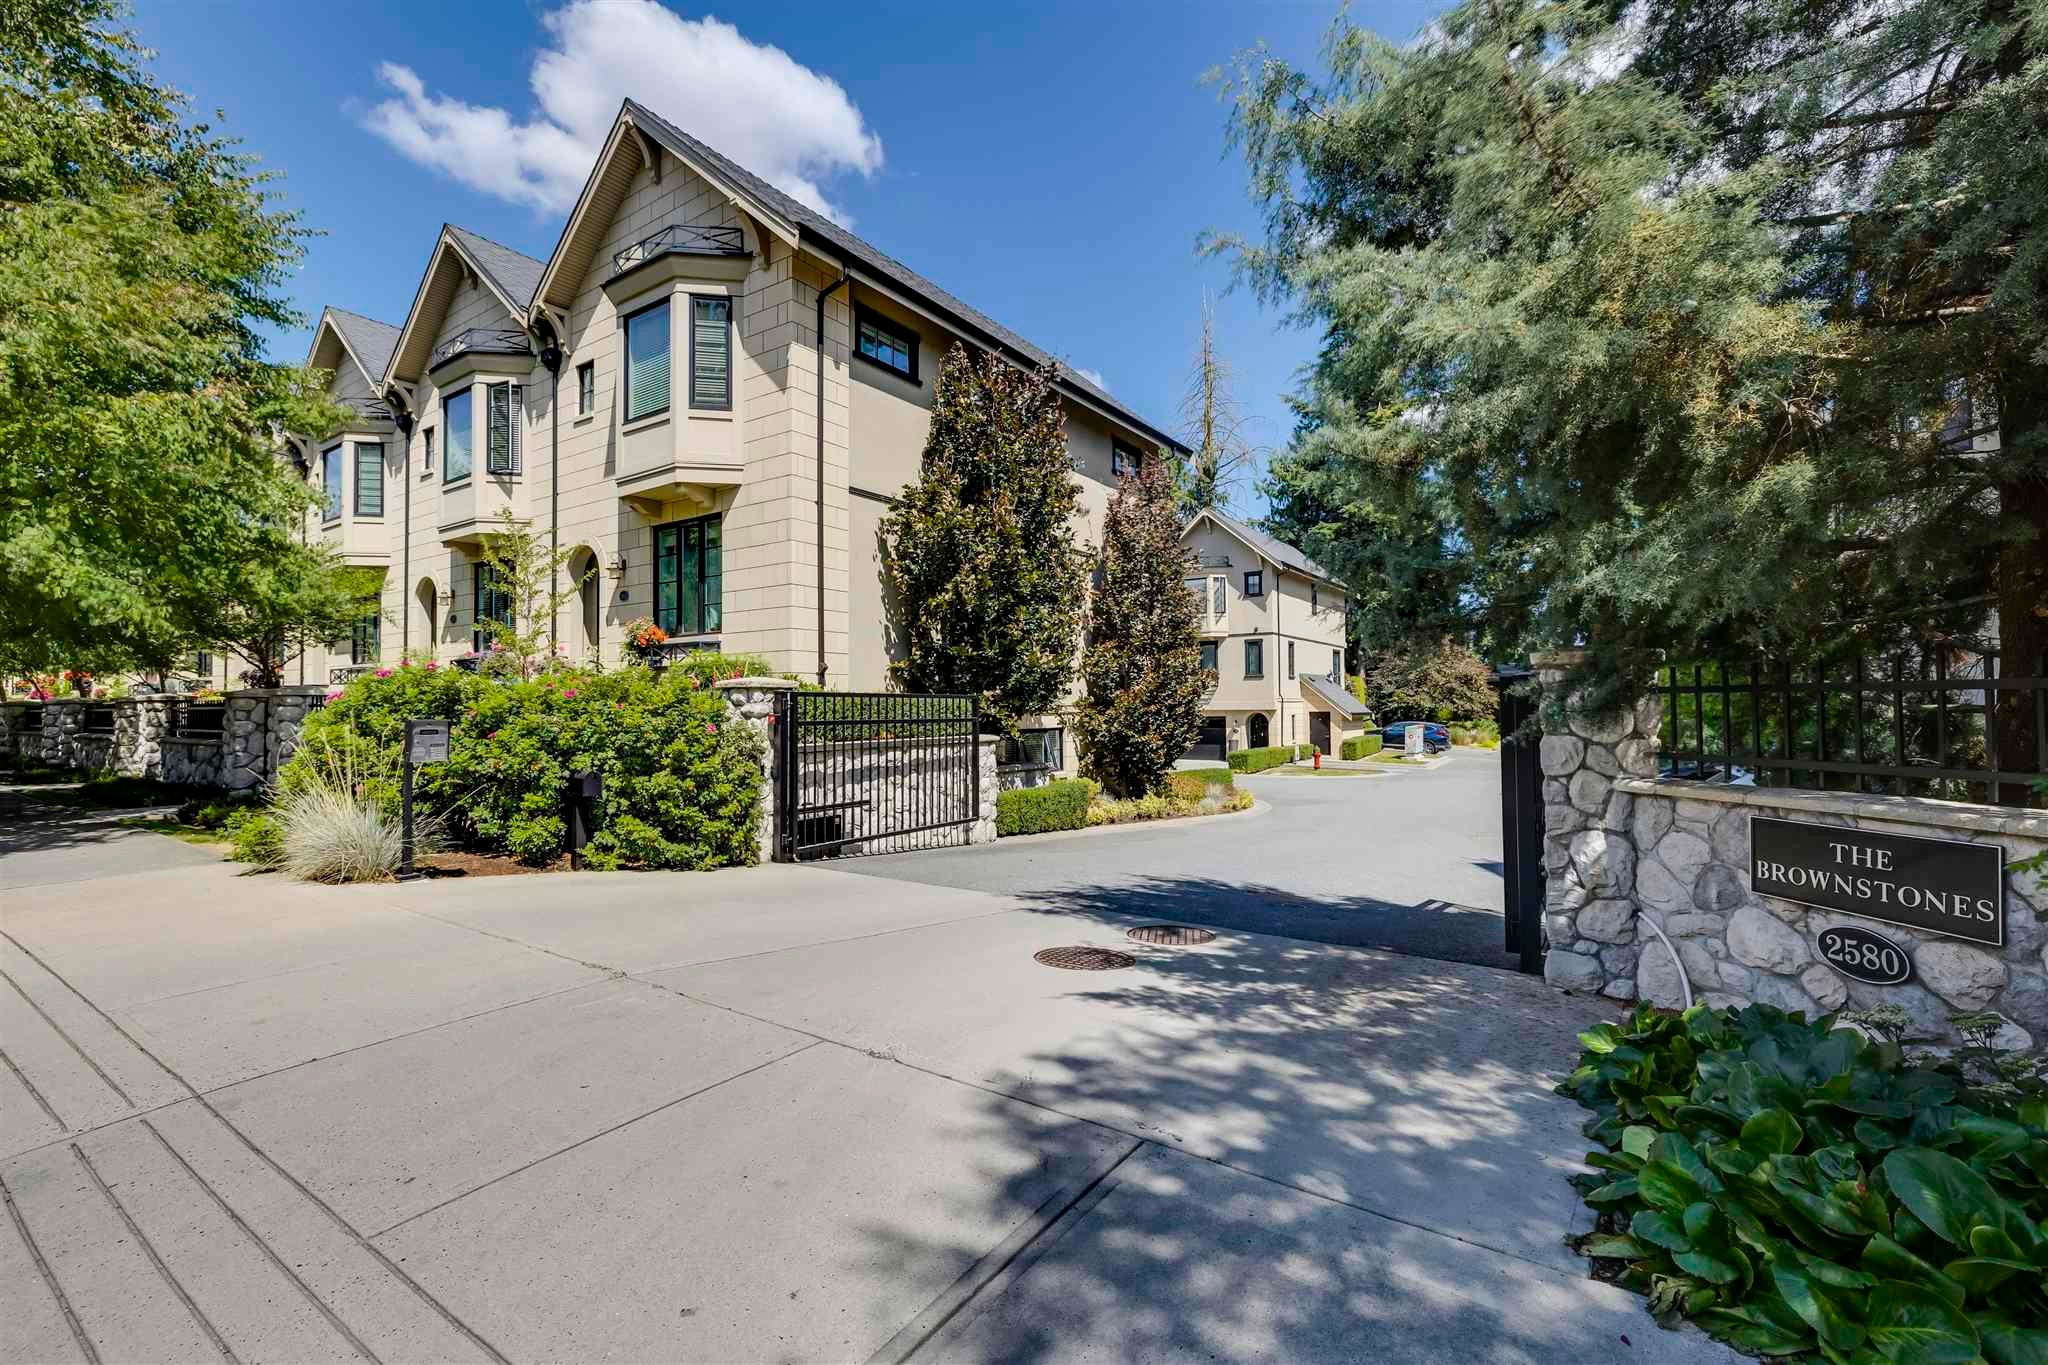 527 2580 LANGDON STREET - Abbotsford West Townhouse for sale, 3 Bedrooms (R2607055)